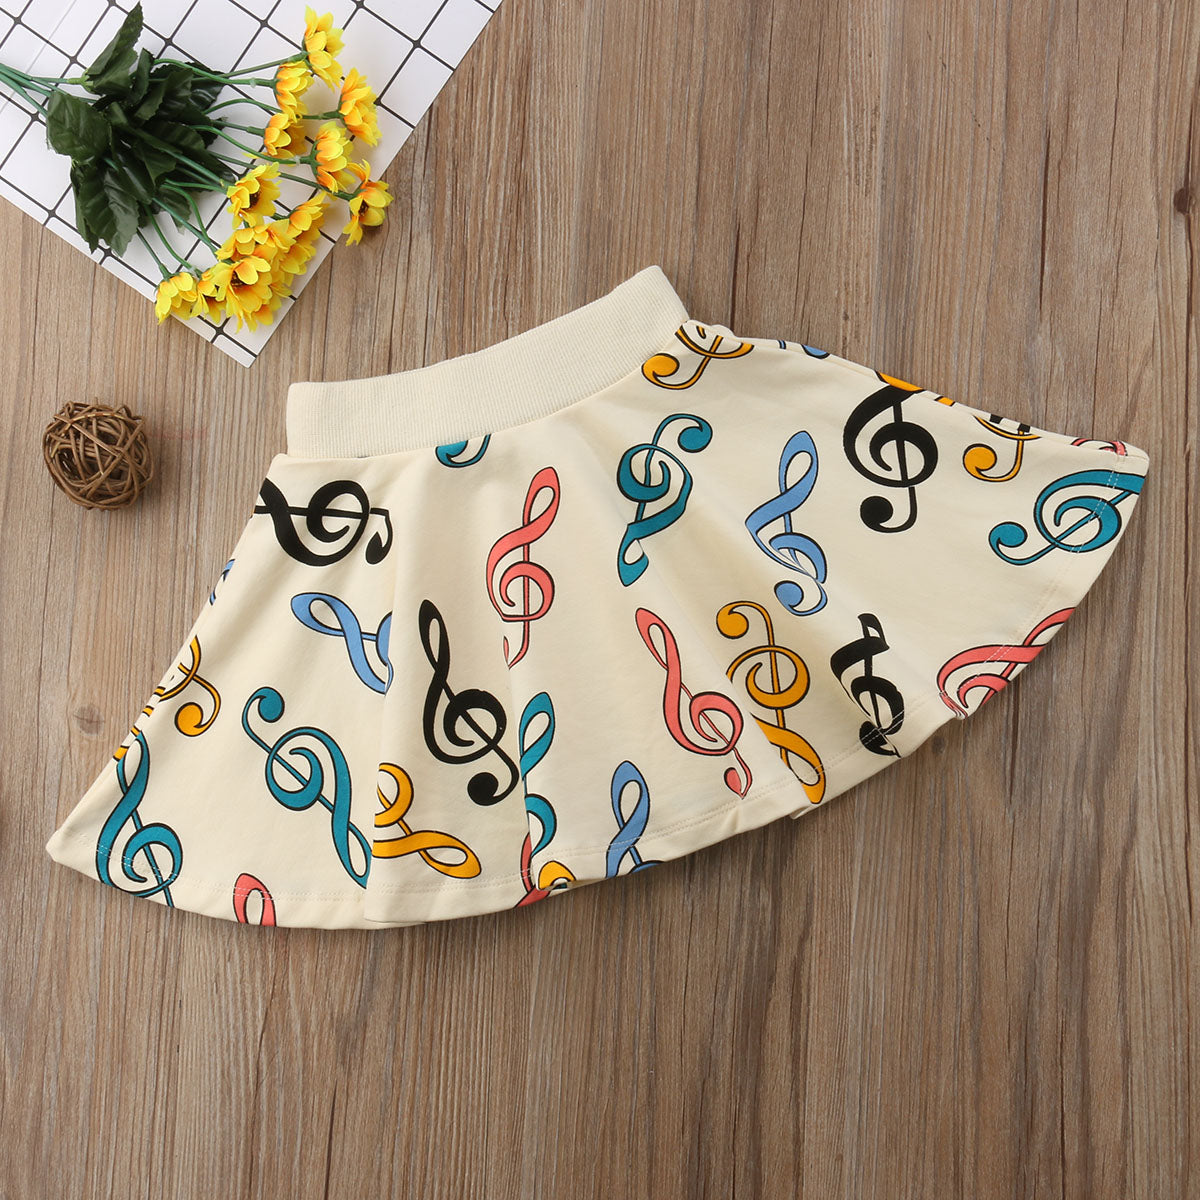 2018 Brand Cotton Musical Note Printed Skirt